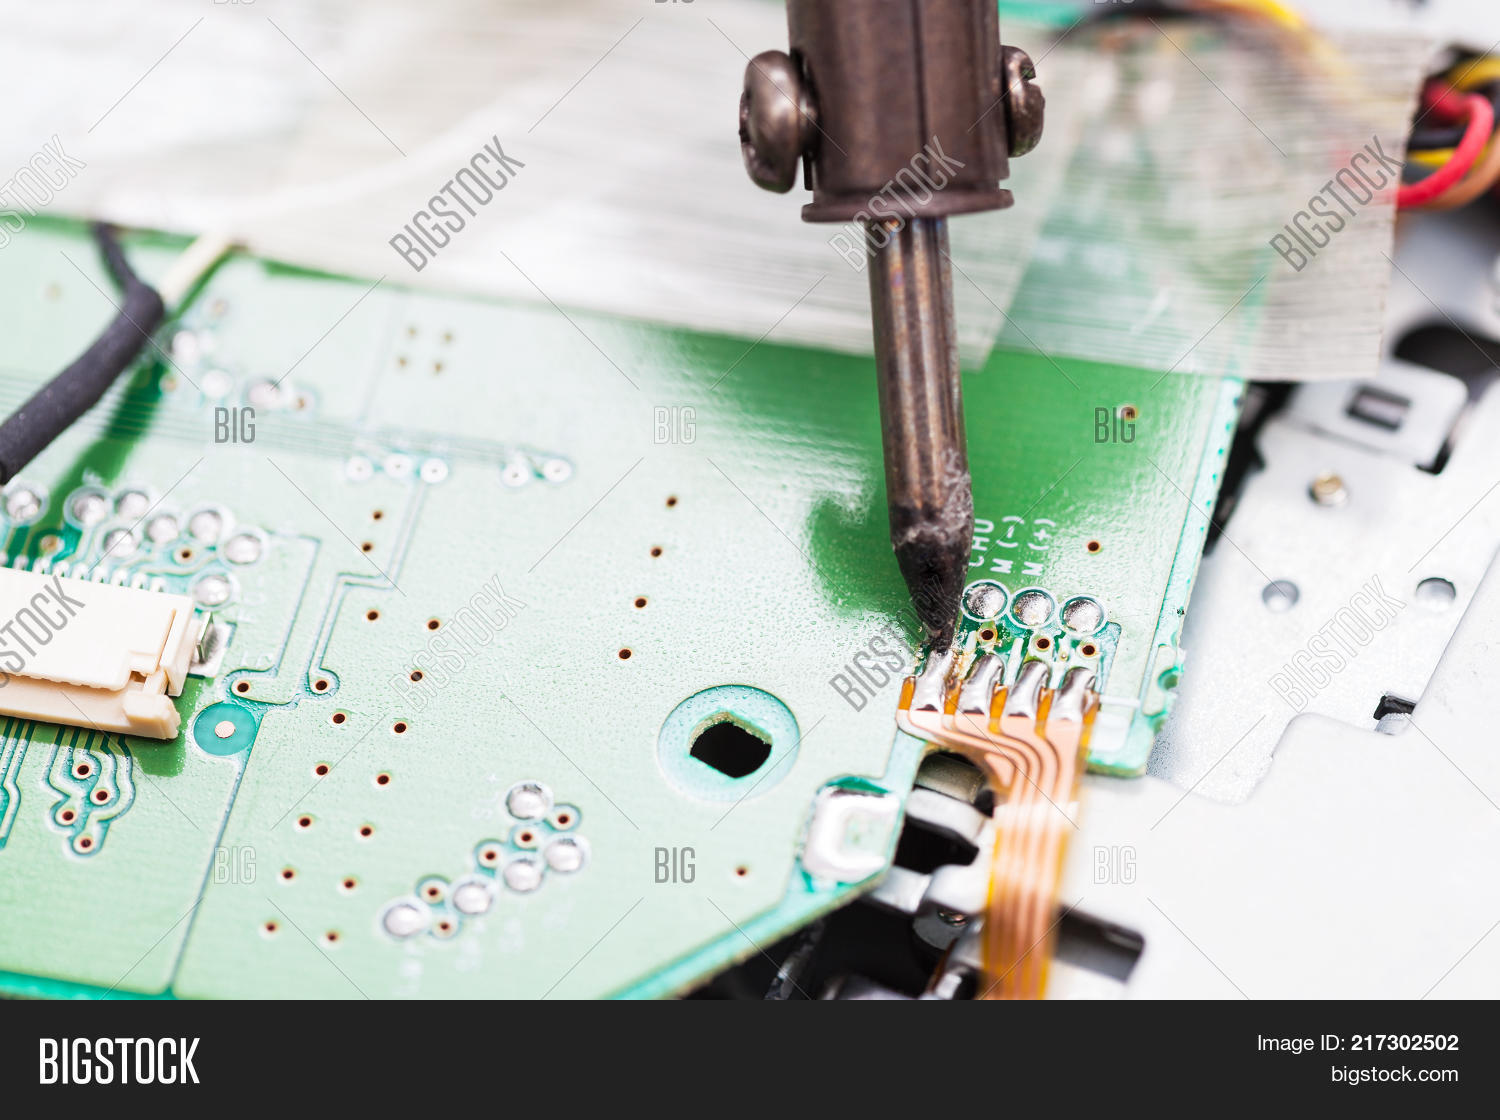 Repairing Electric Circuit Board Image & Photo | Bigstock